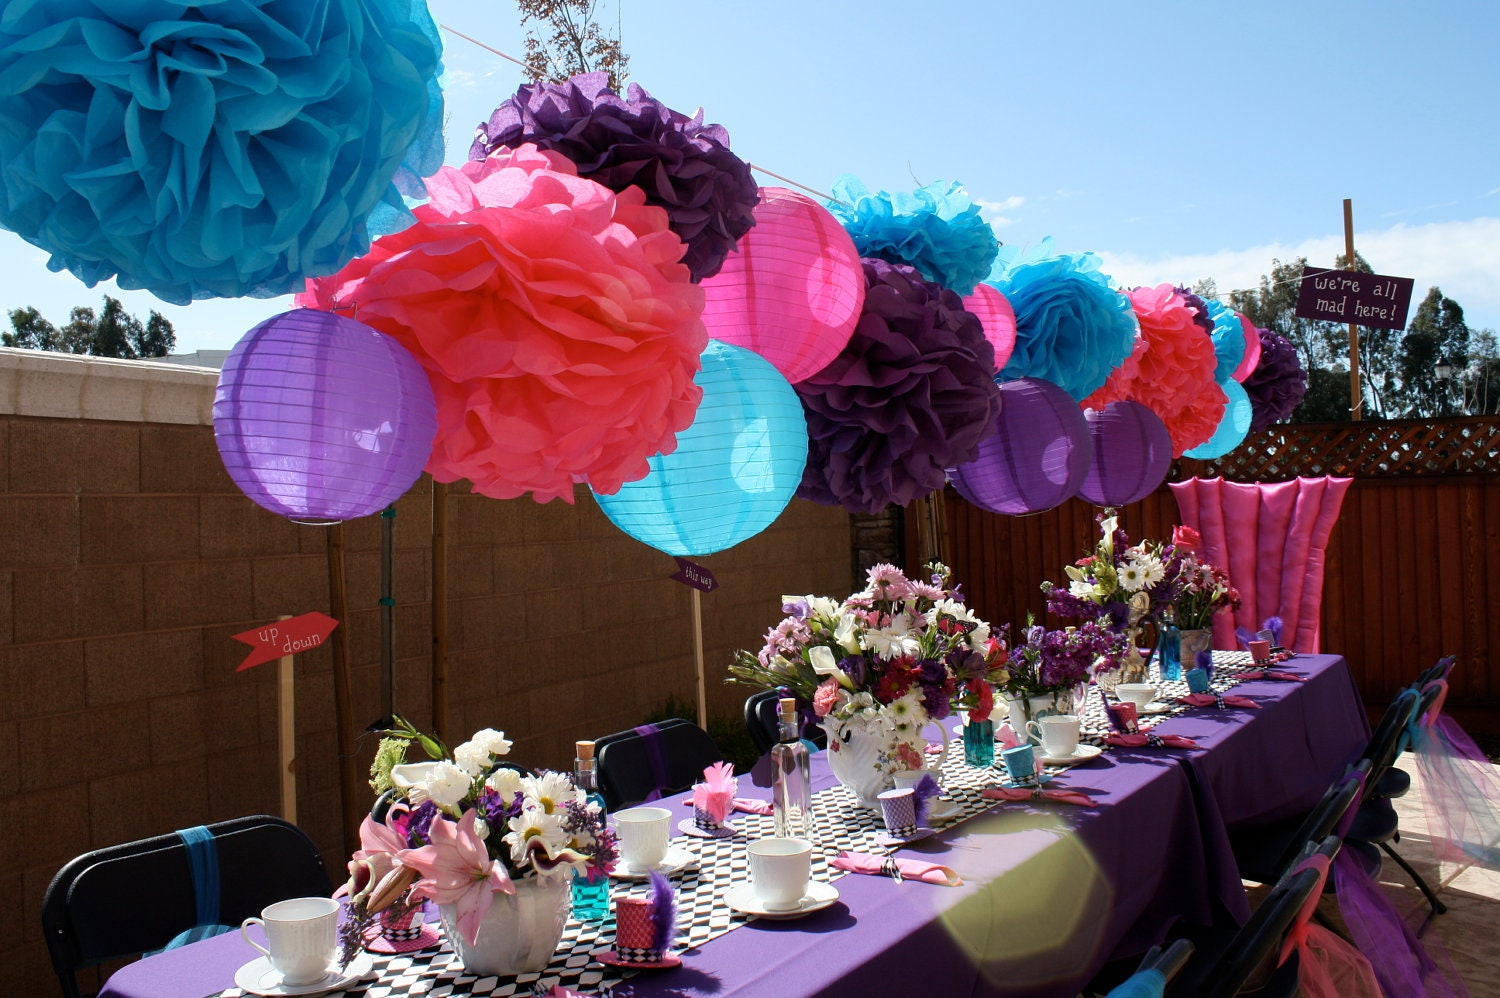 10 tissue paper pom poms mad hatter tea party decorations - Mad hatter tea party decoration ideas ...